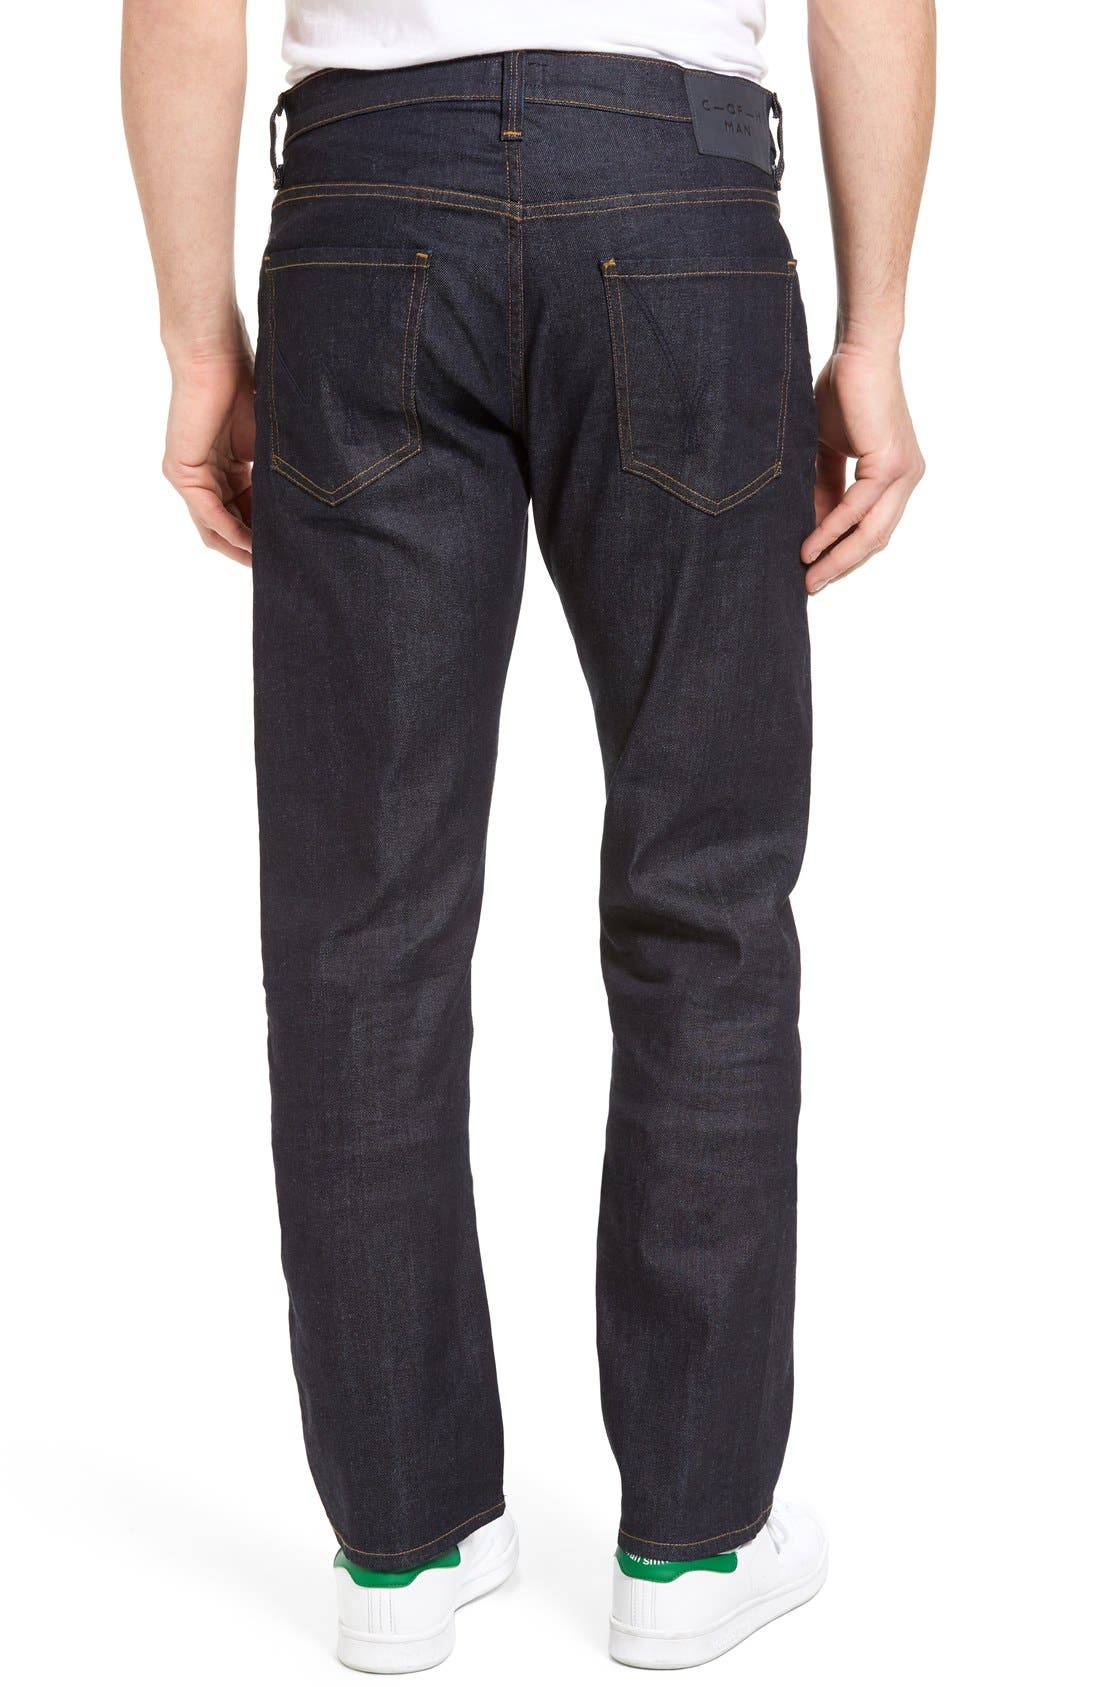 Sid Classic Straight Leg Jeans,                             Alternate thumbnail 7, color,                             LAFAYETTE